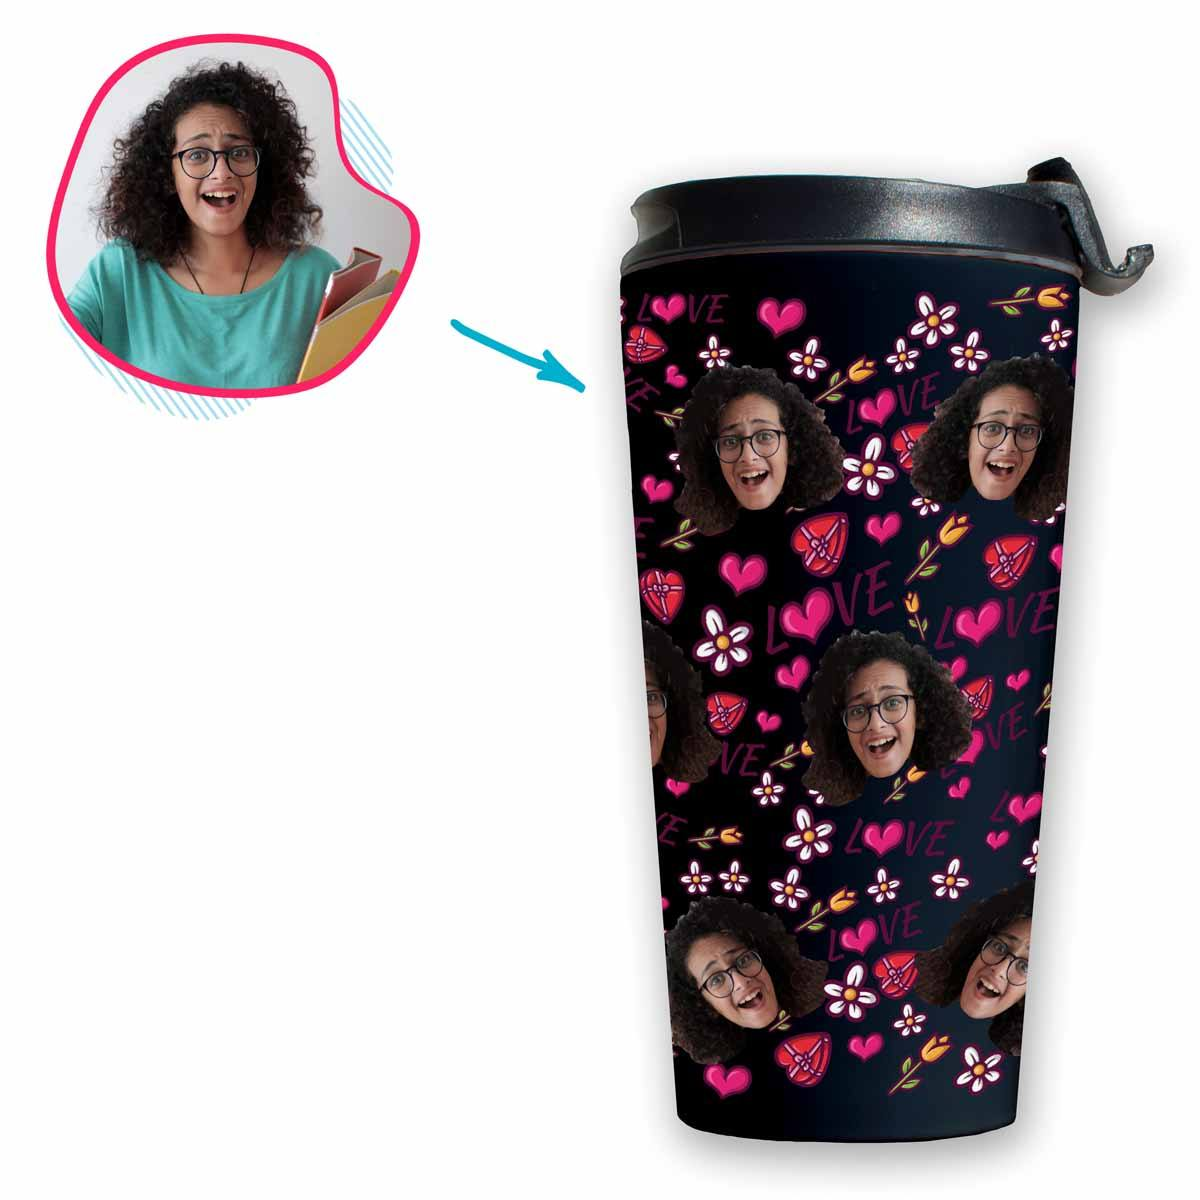 dark Hearts and Flowers travel mug personalized with photo of face printed on it